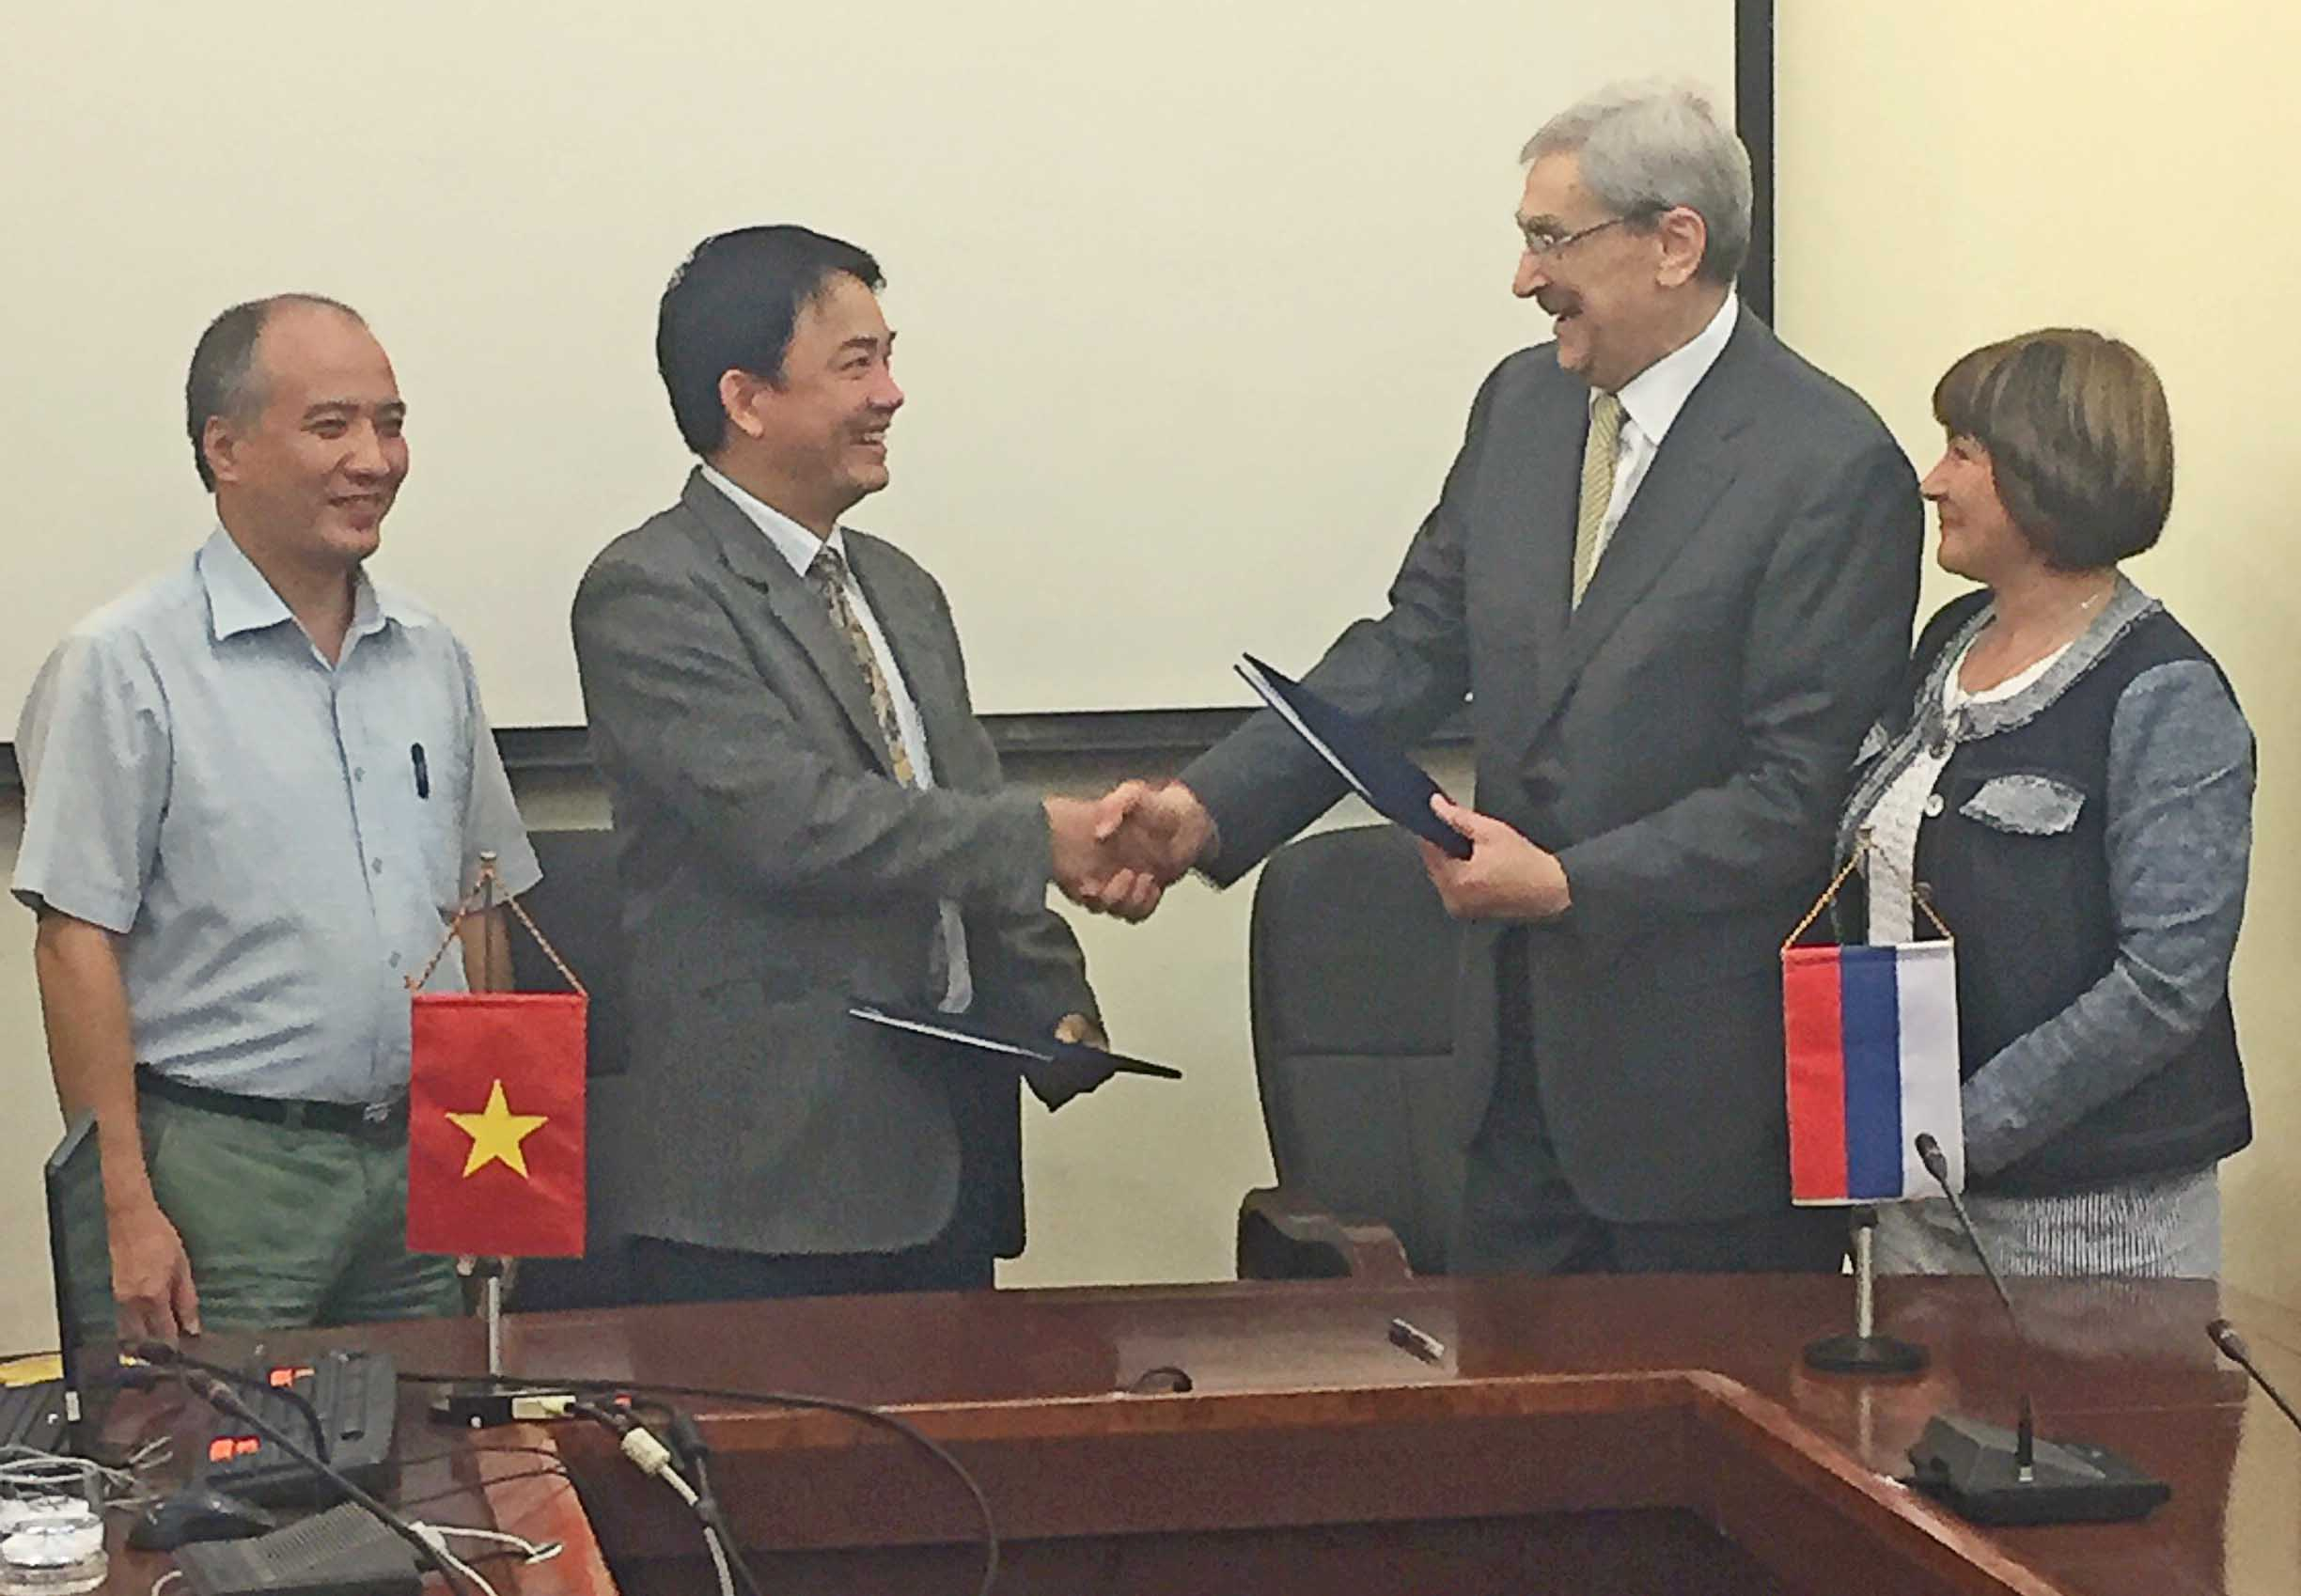 Signing the Memorandum of Understanding between the Nuclear Safety Institute of the Russian Academy of Sciences and Vietnam Atomic Energy Institute of the Ministry of Science and Technologies of the Socialist Republic of Vietnam